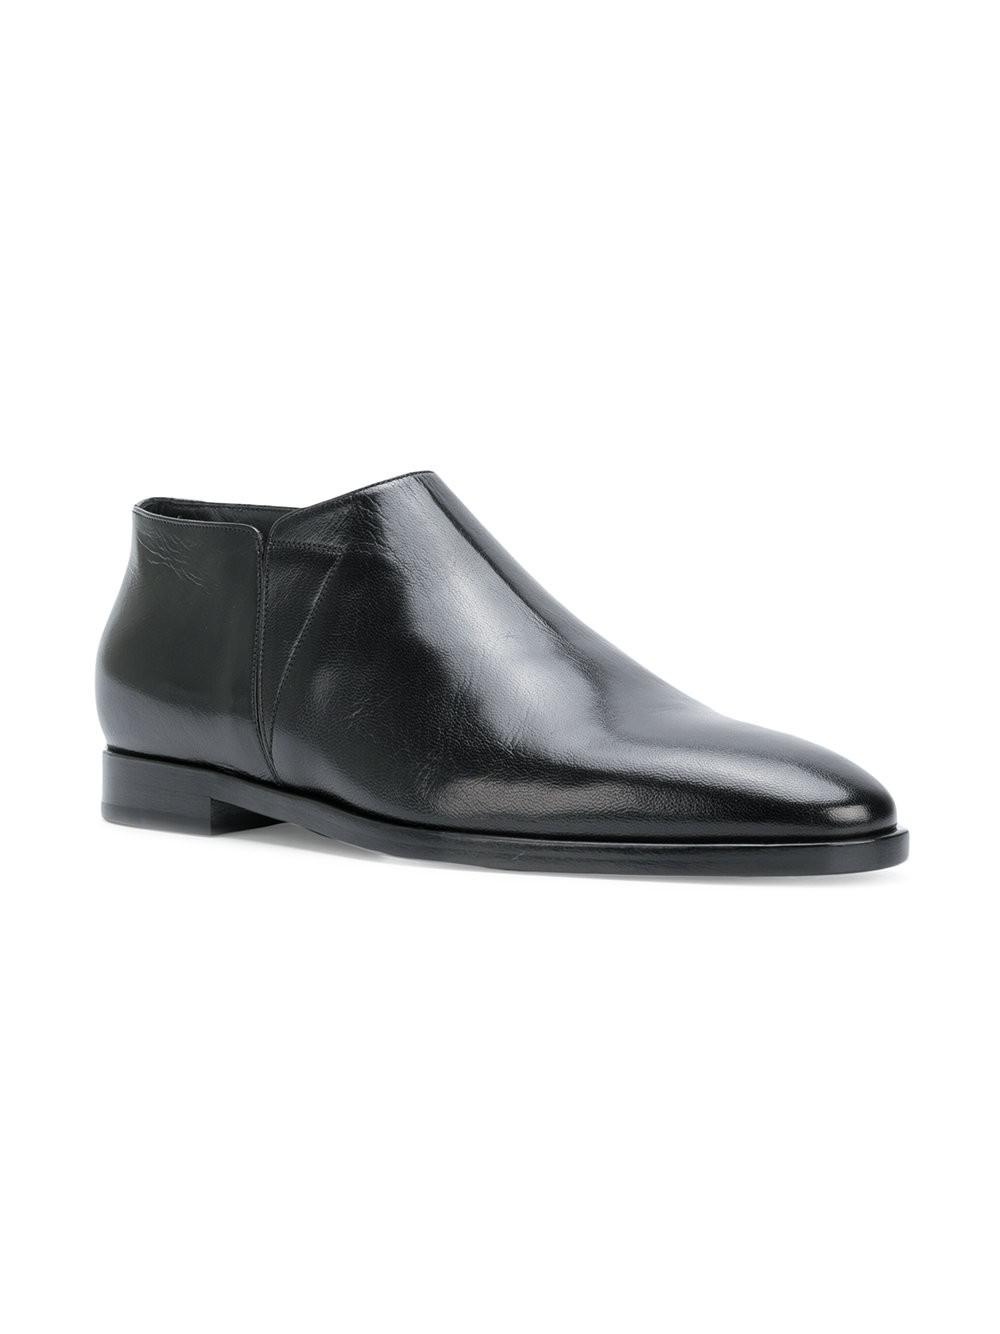 Slim Slipper shoes - Black Saint Laurent lXwPc